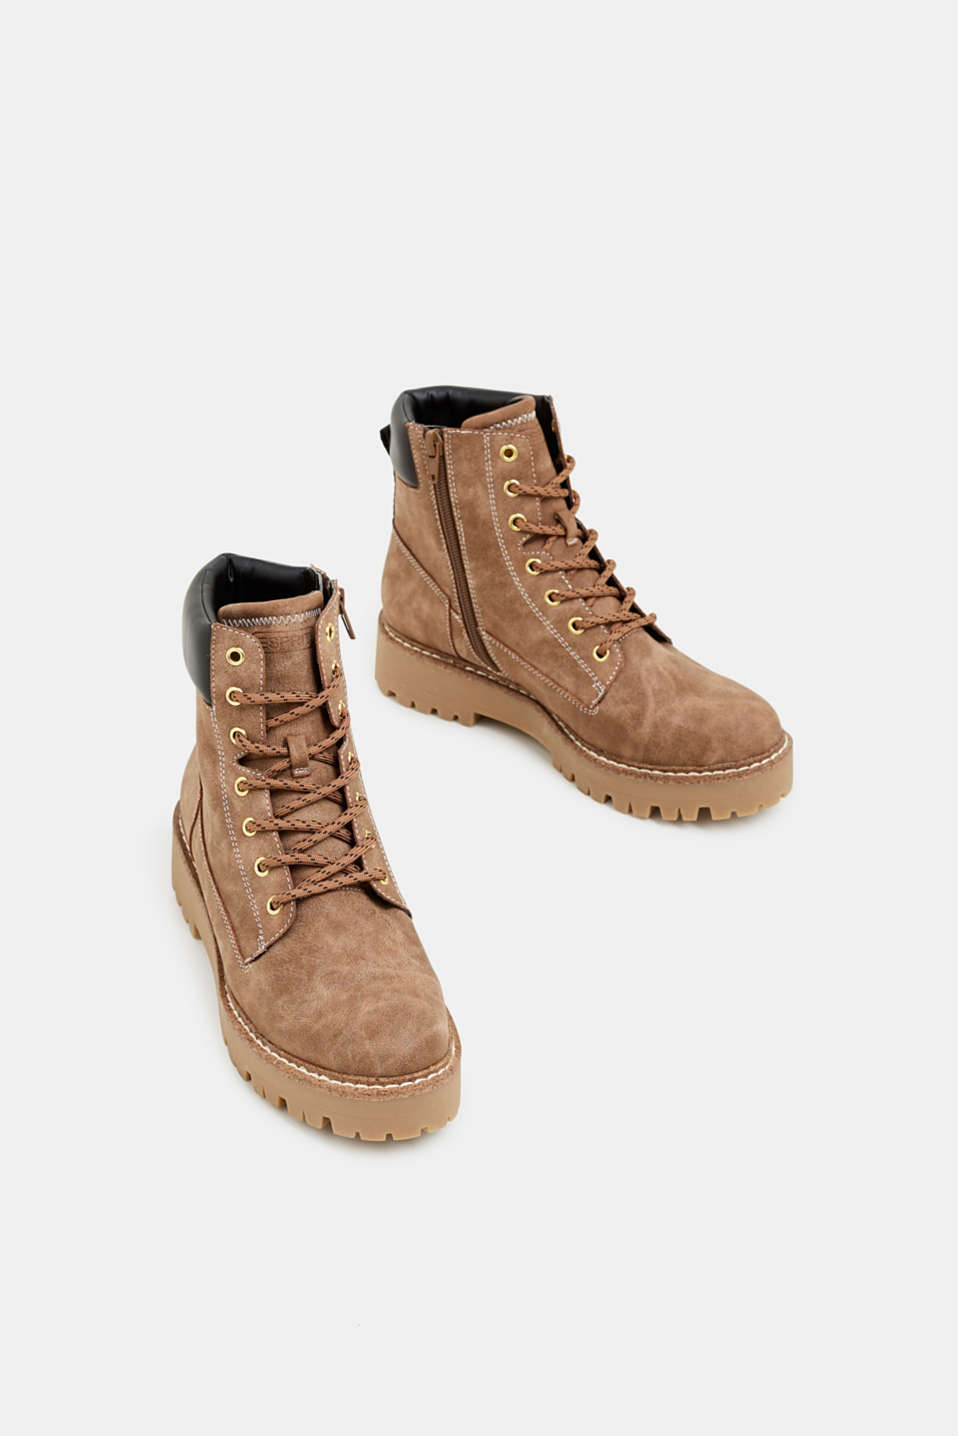 Lace-up boots in a rustic look, KHAKI BEIGE, detail image number 1